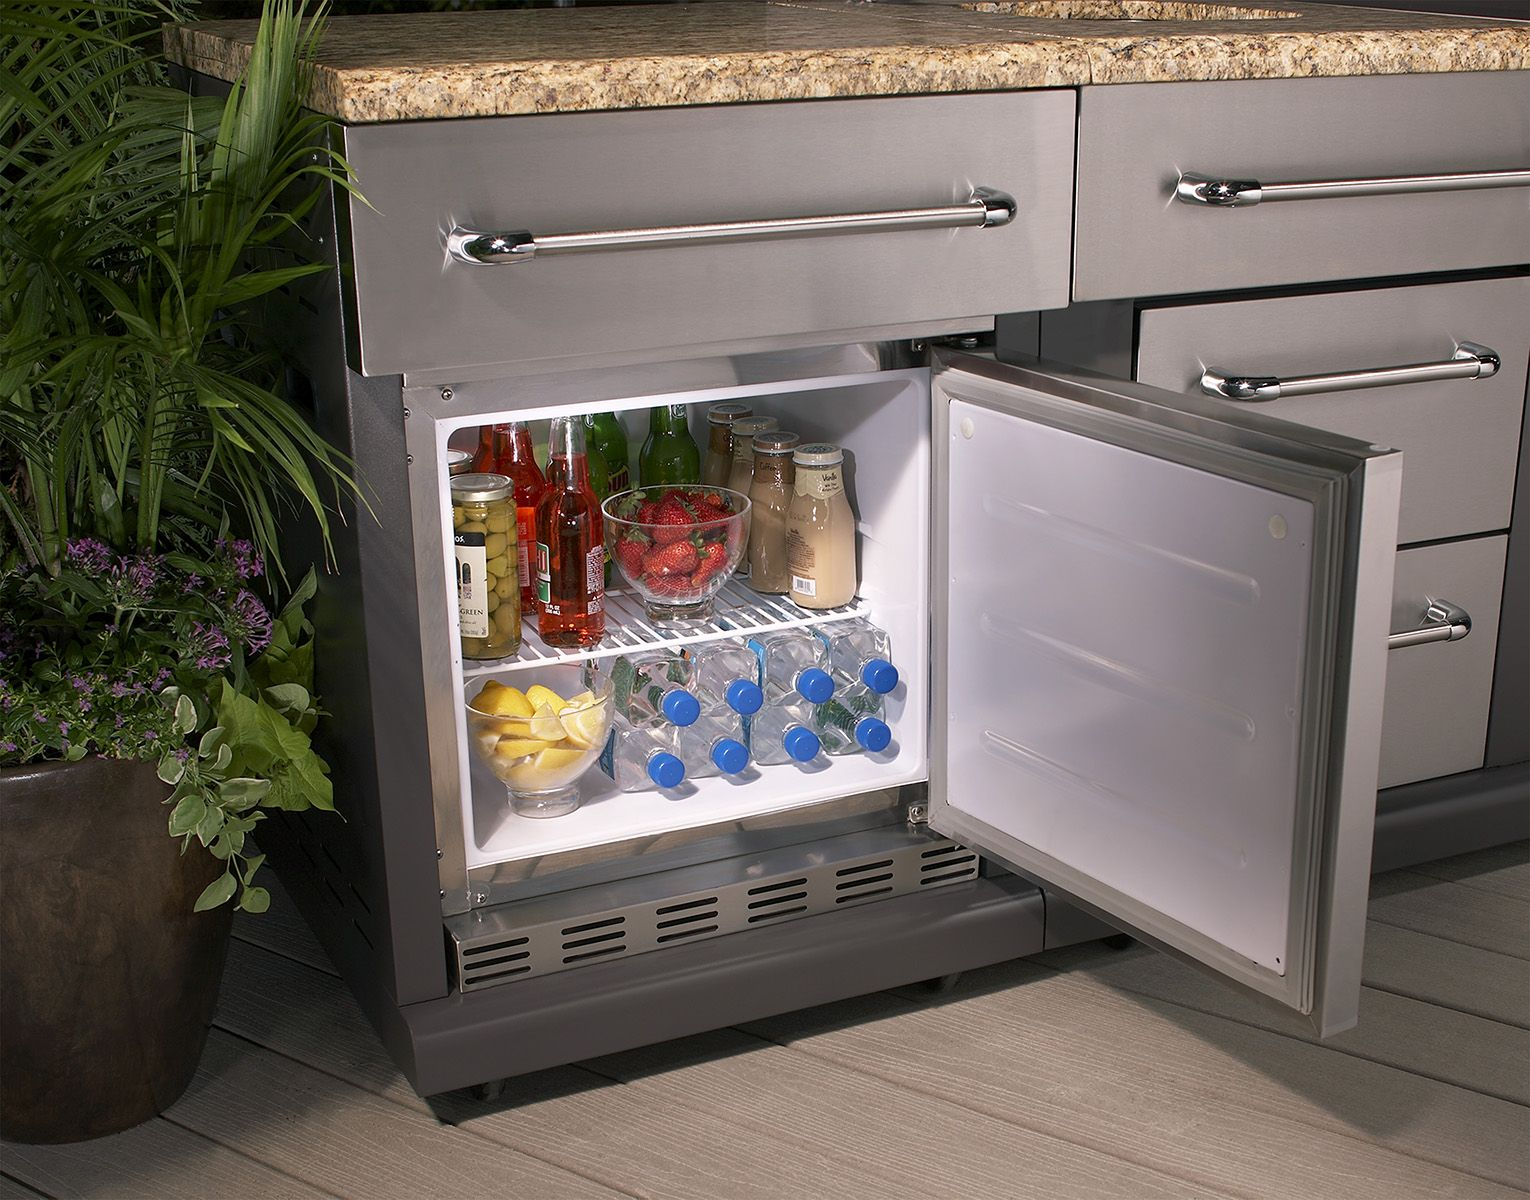 The Only Thing Your Grill Needs Is An Outdoor Refrigerator To Go With It Savor Summer